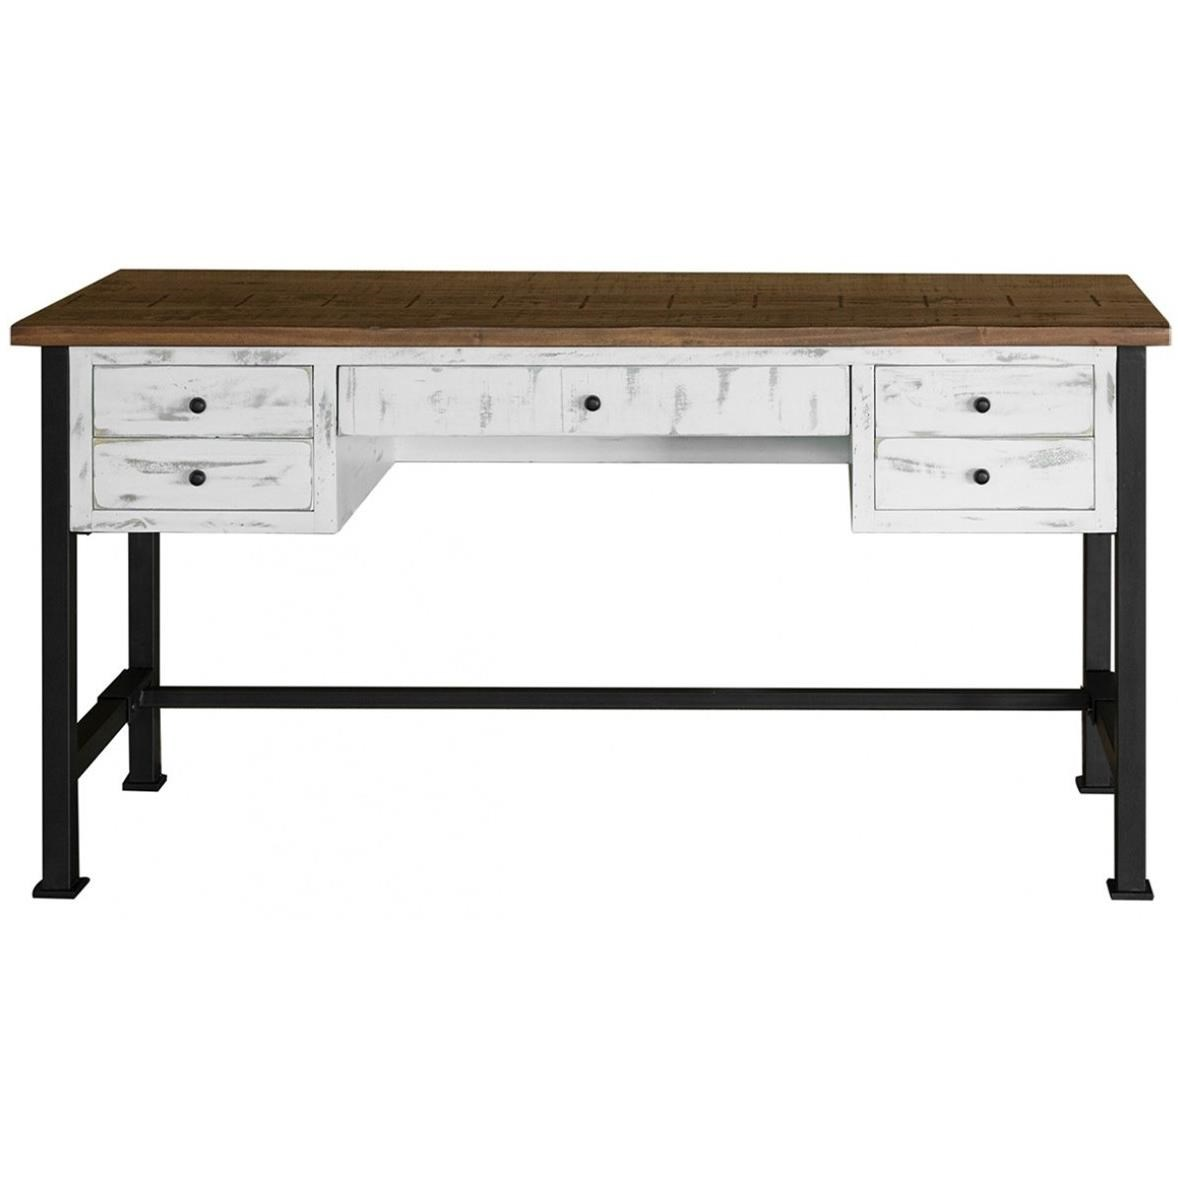 Pueblo Writing Desk by International Furniture Direct at Darvin Furniture